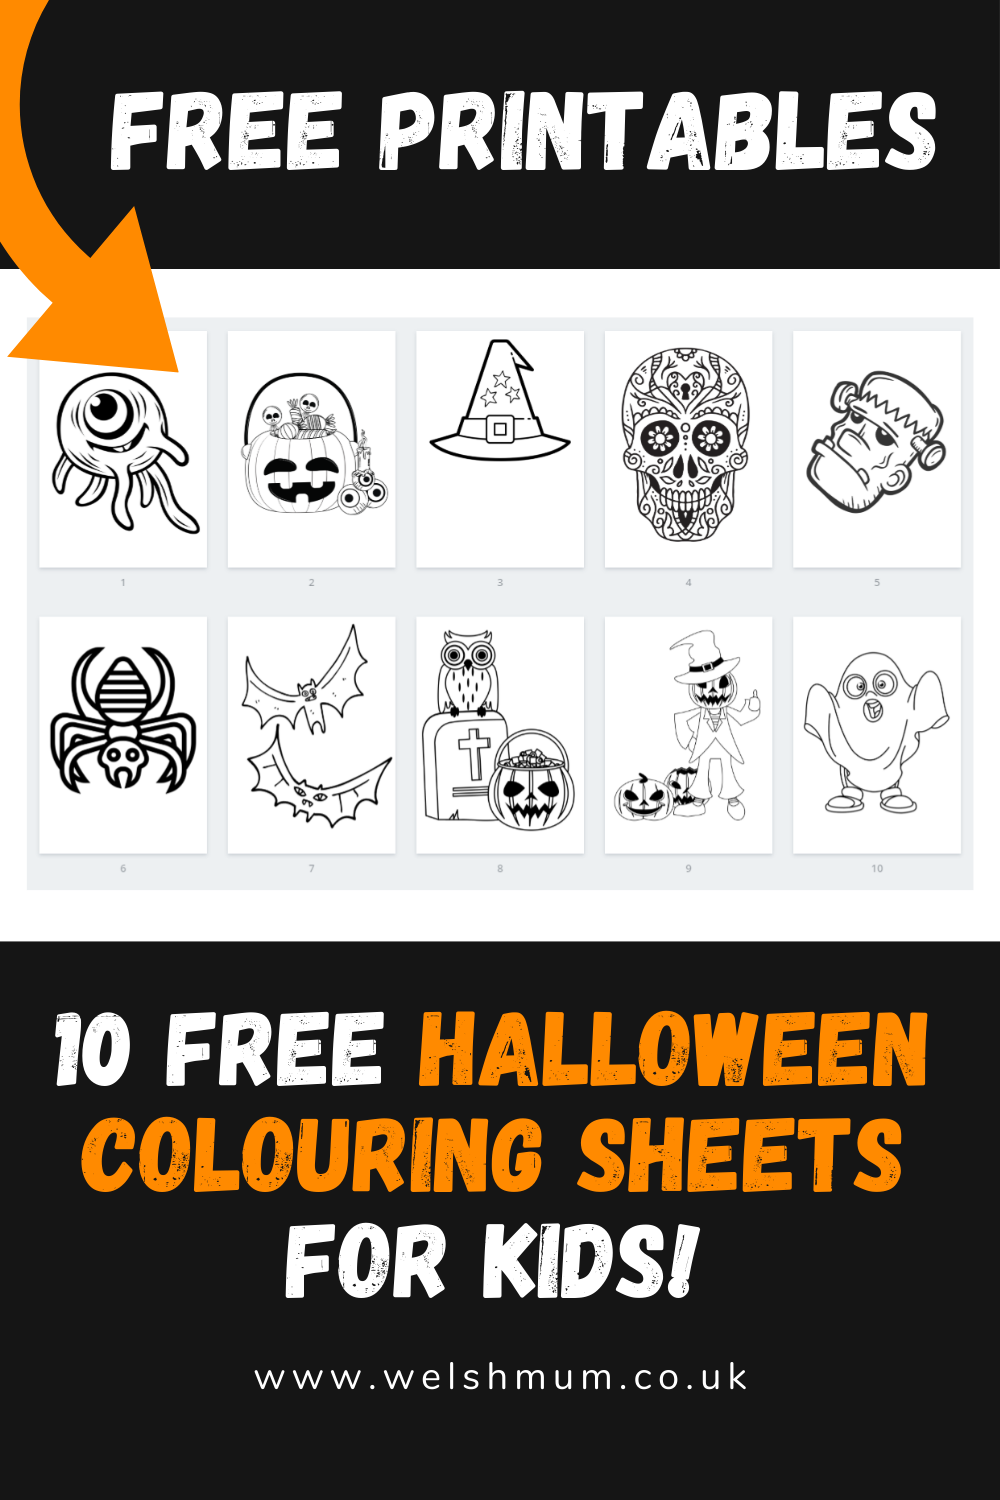 Halloween Colouring Pages - If you're looking for an easy to do at home Halloween activity, look no further than these ten free Halloween printables.